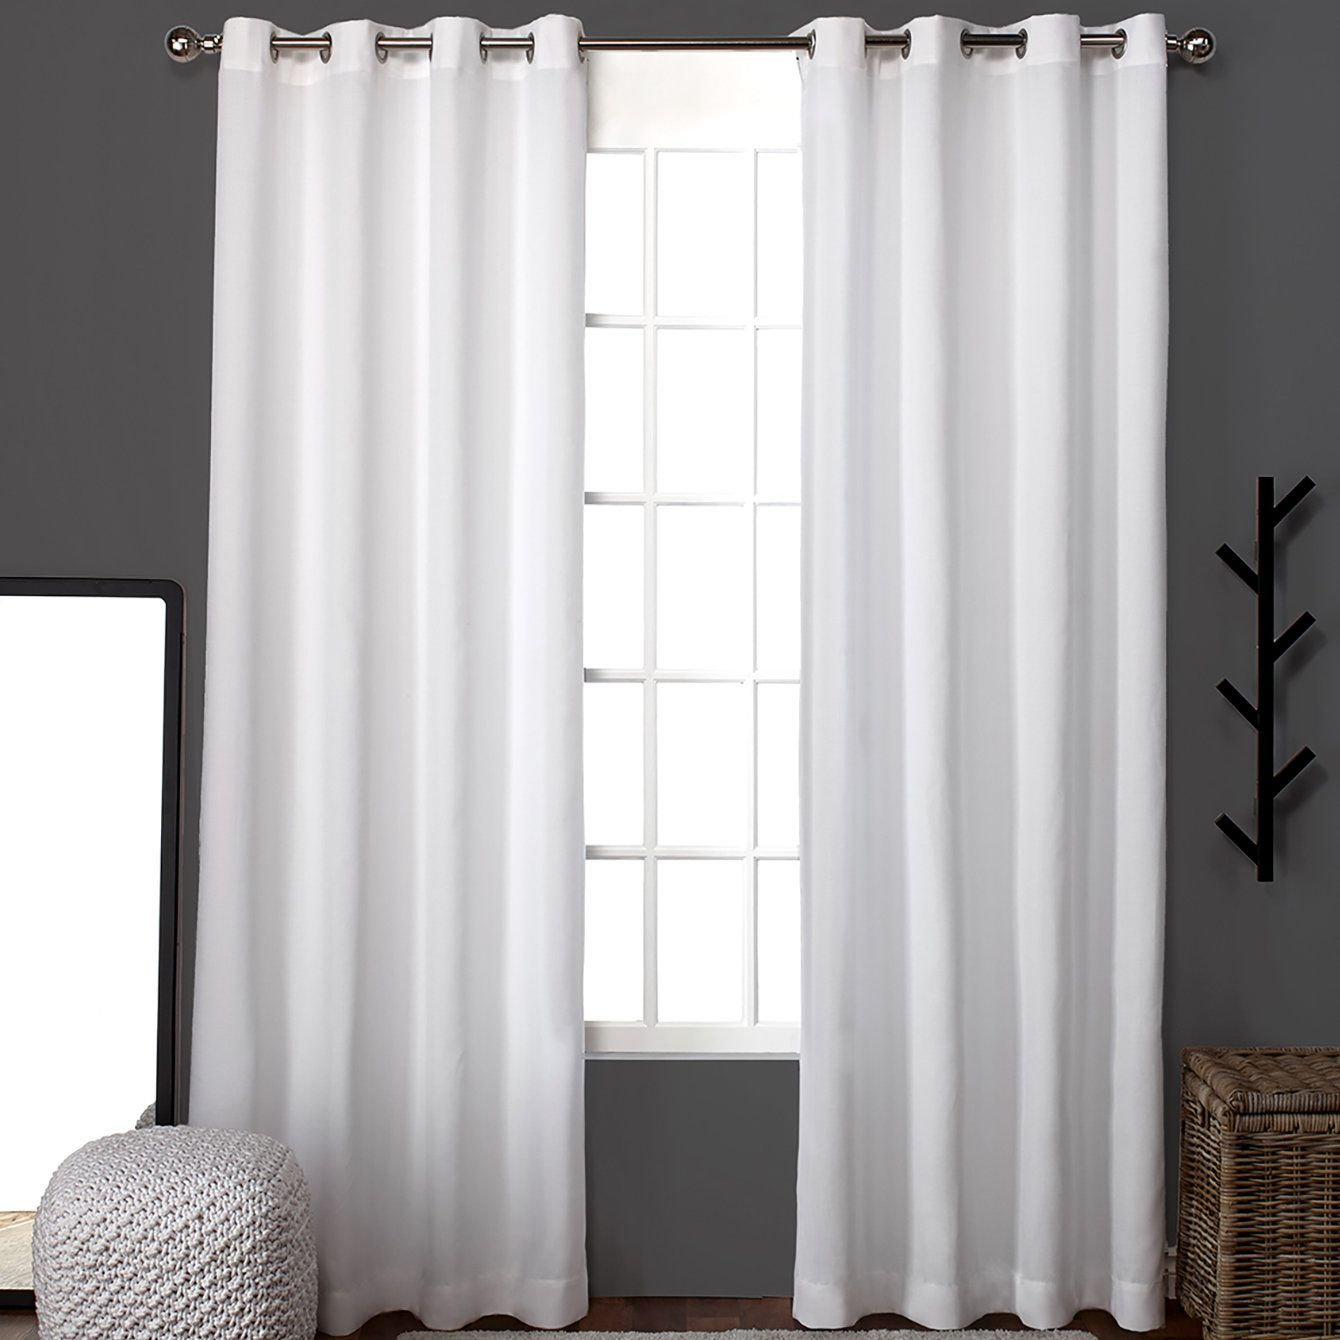 Heil Solid Color Semi Sheer Grommet Curtain Panel Home Curtains Panel Curtains Curtains